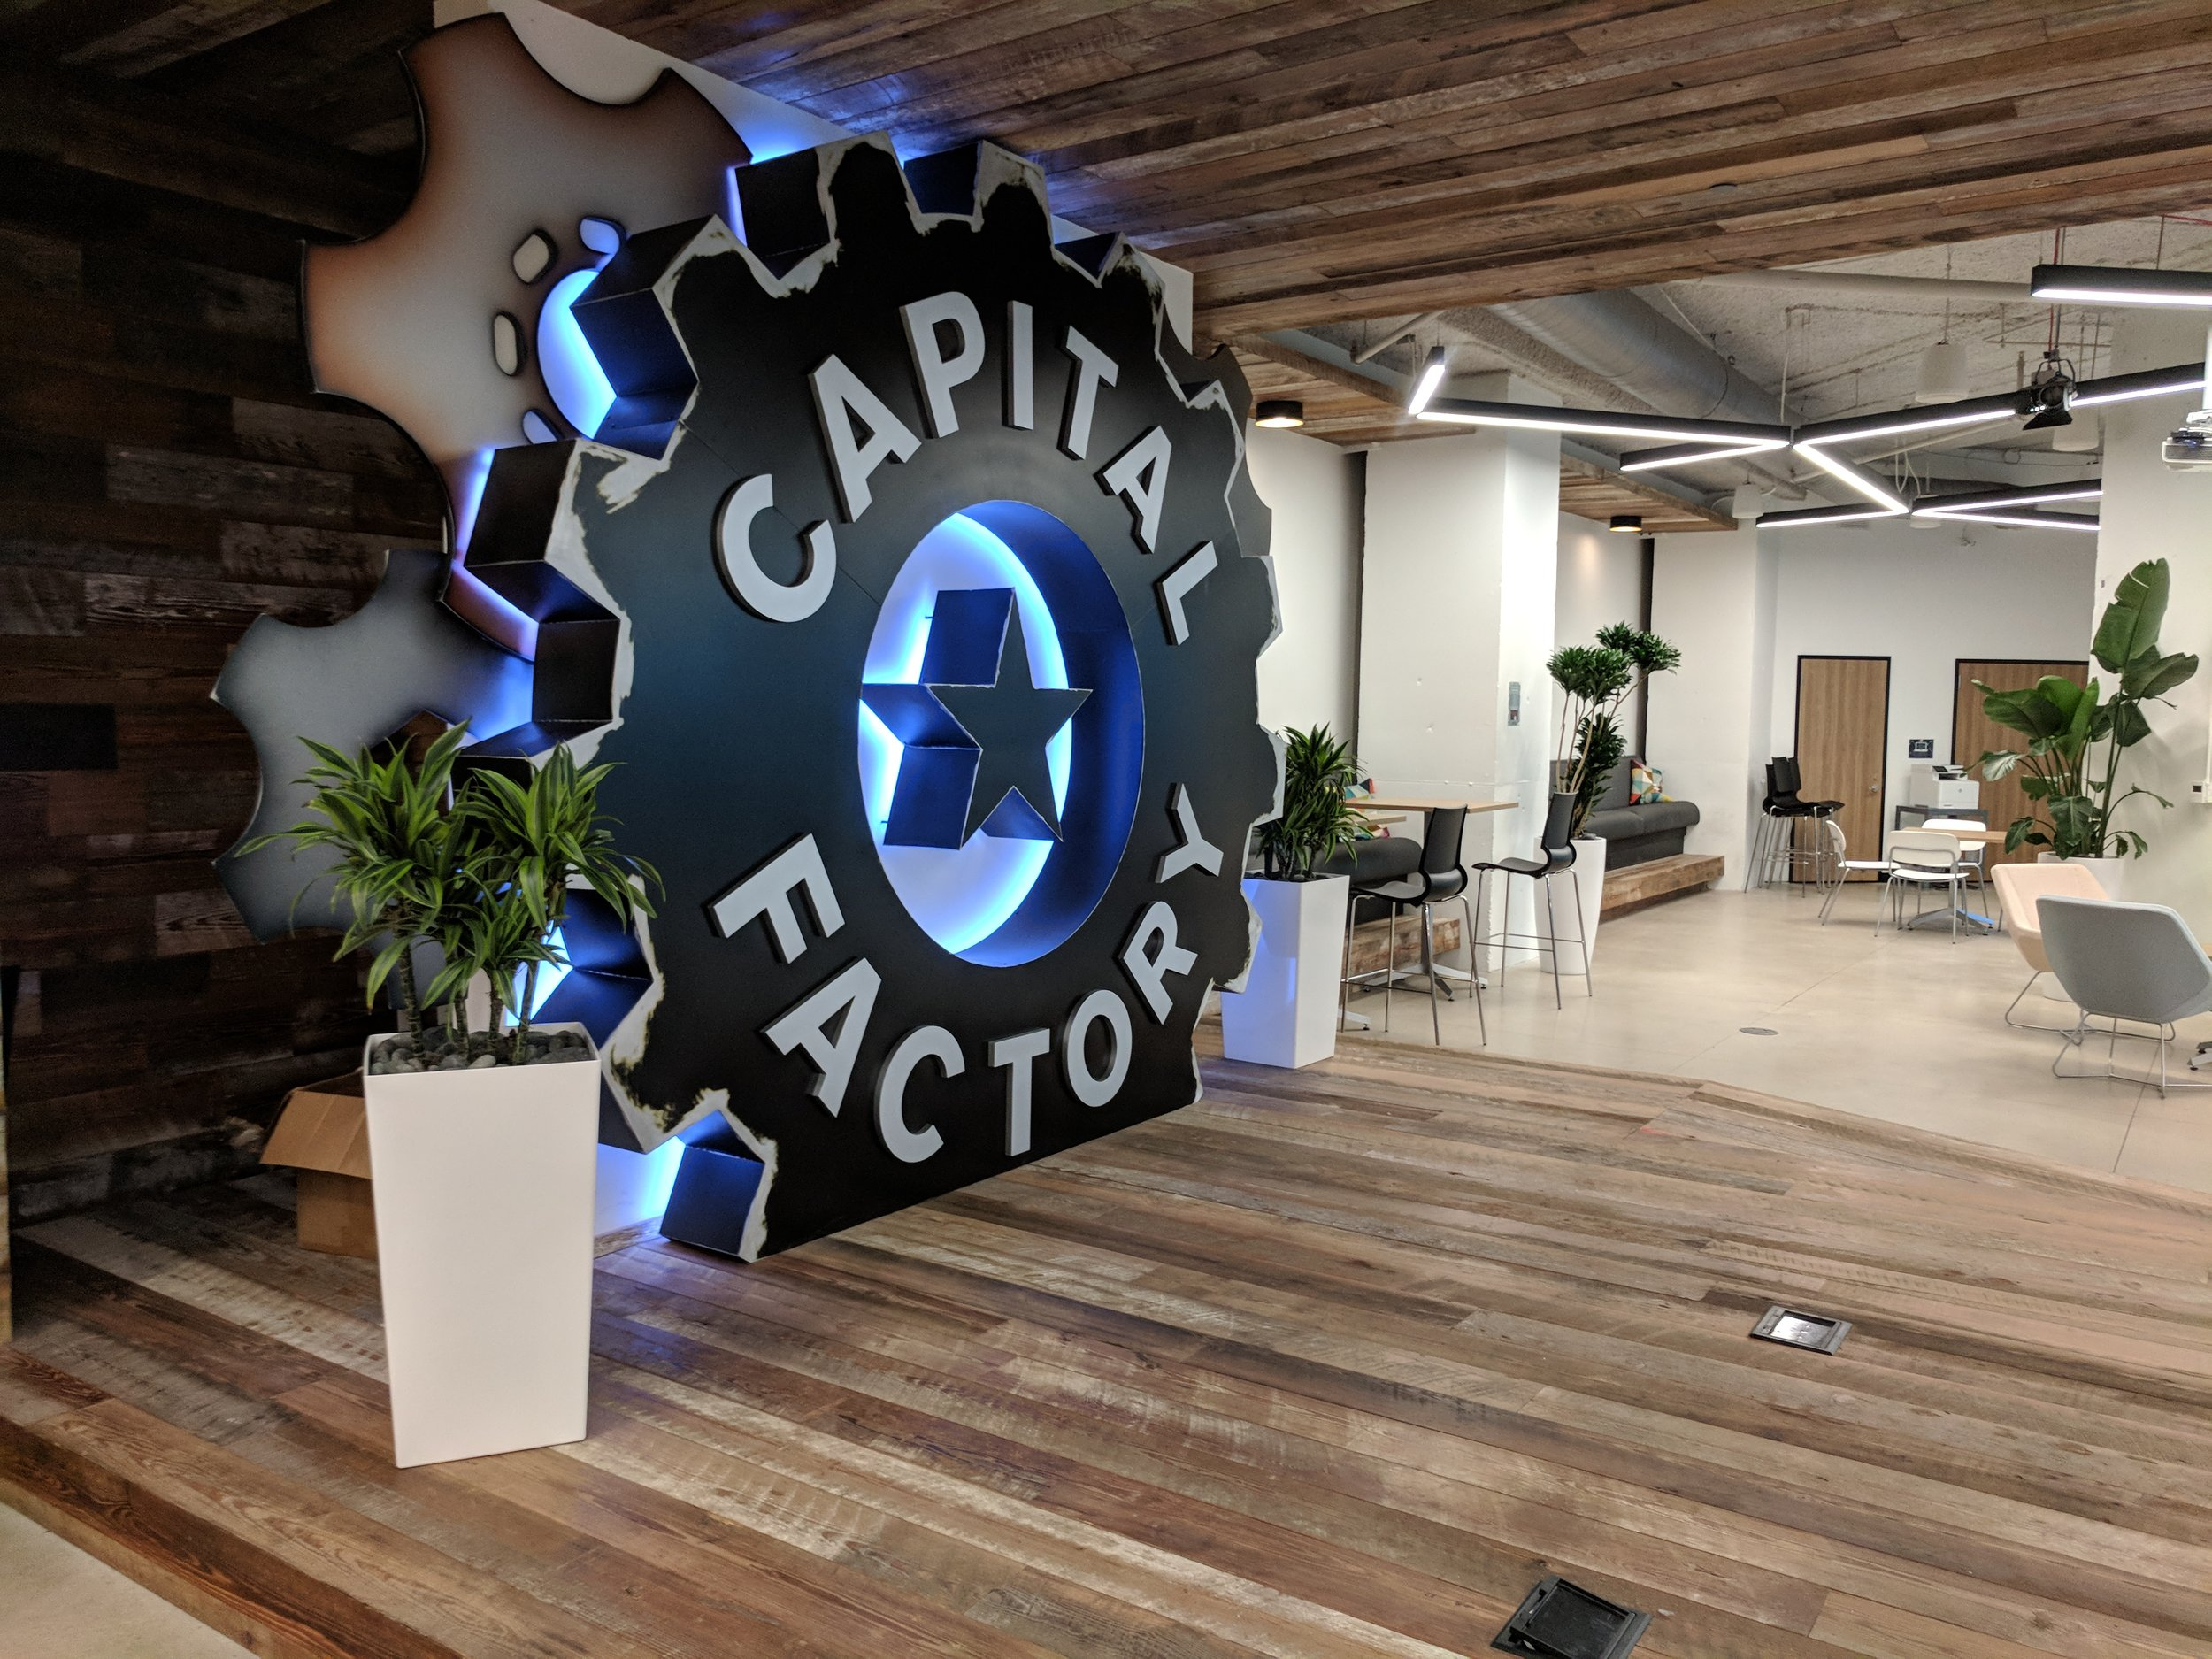 CAPITAL FACTORY - THE MAGNET FOR ENTREPRENEURS IN TEXAS